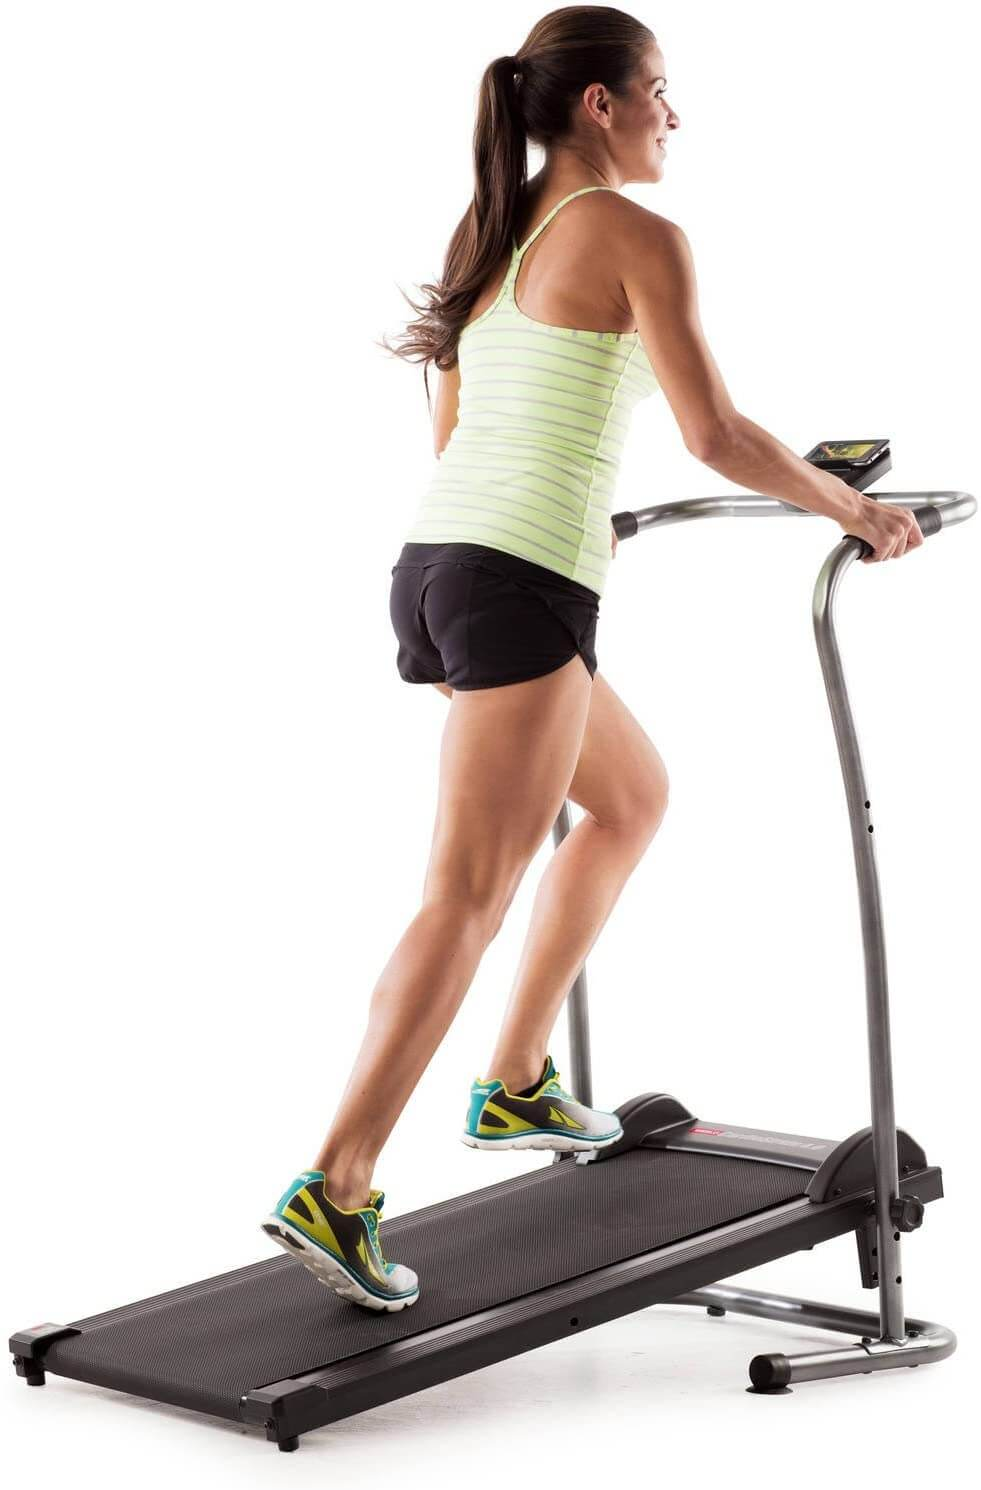 Is buying a cheap treadmill good or bad?